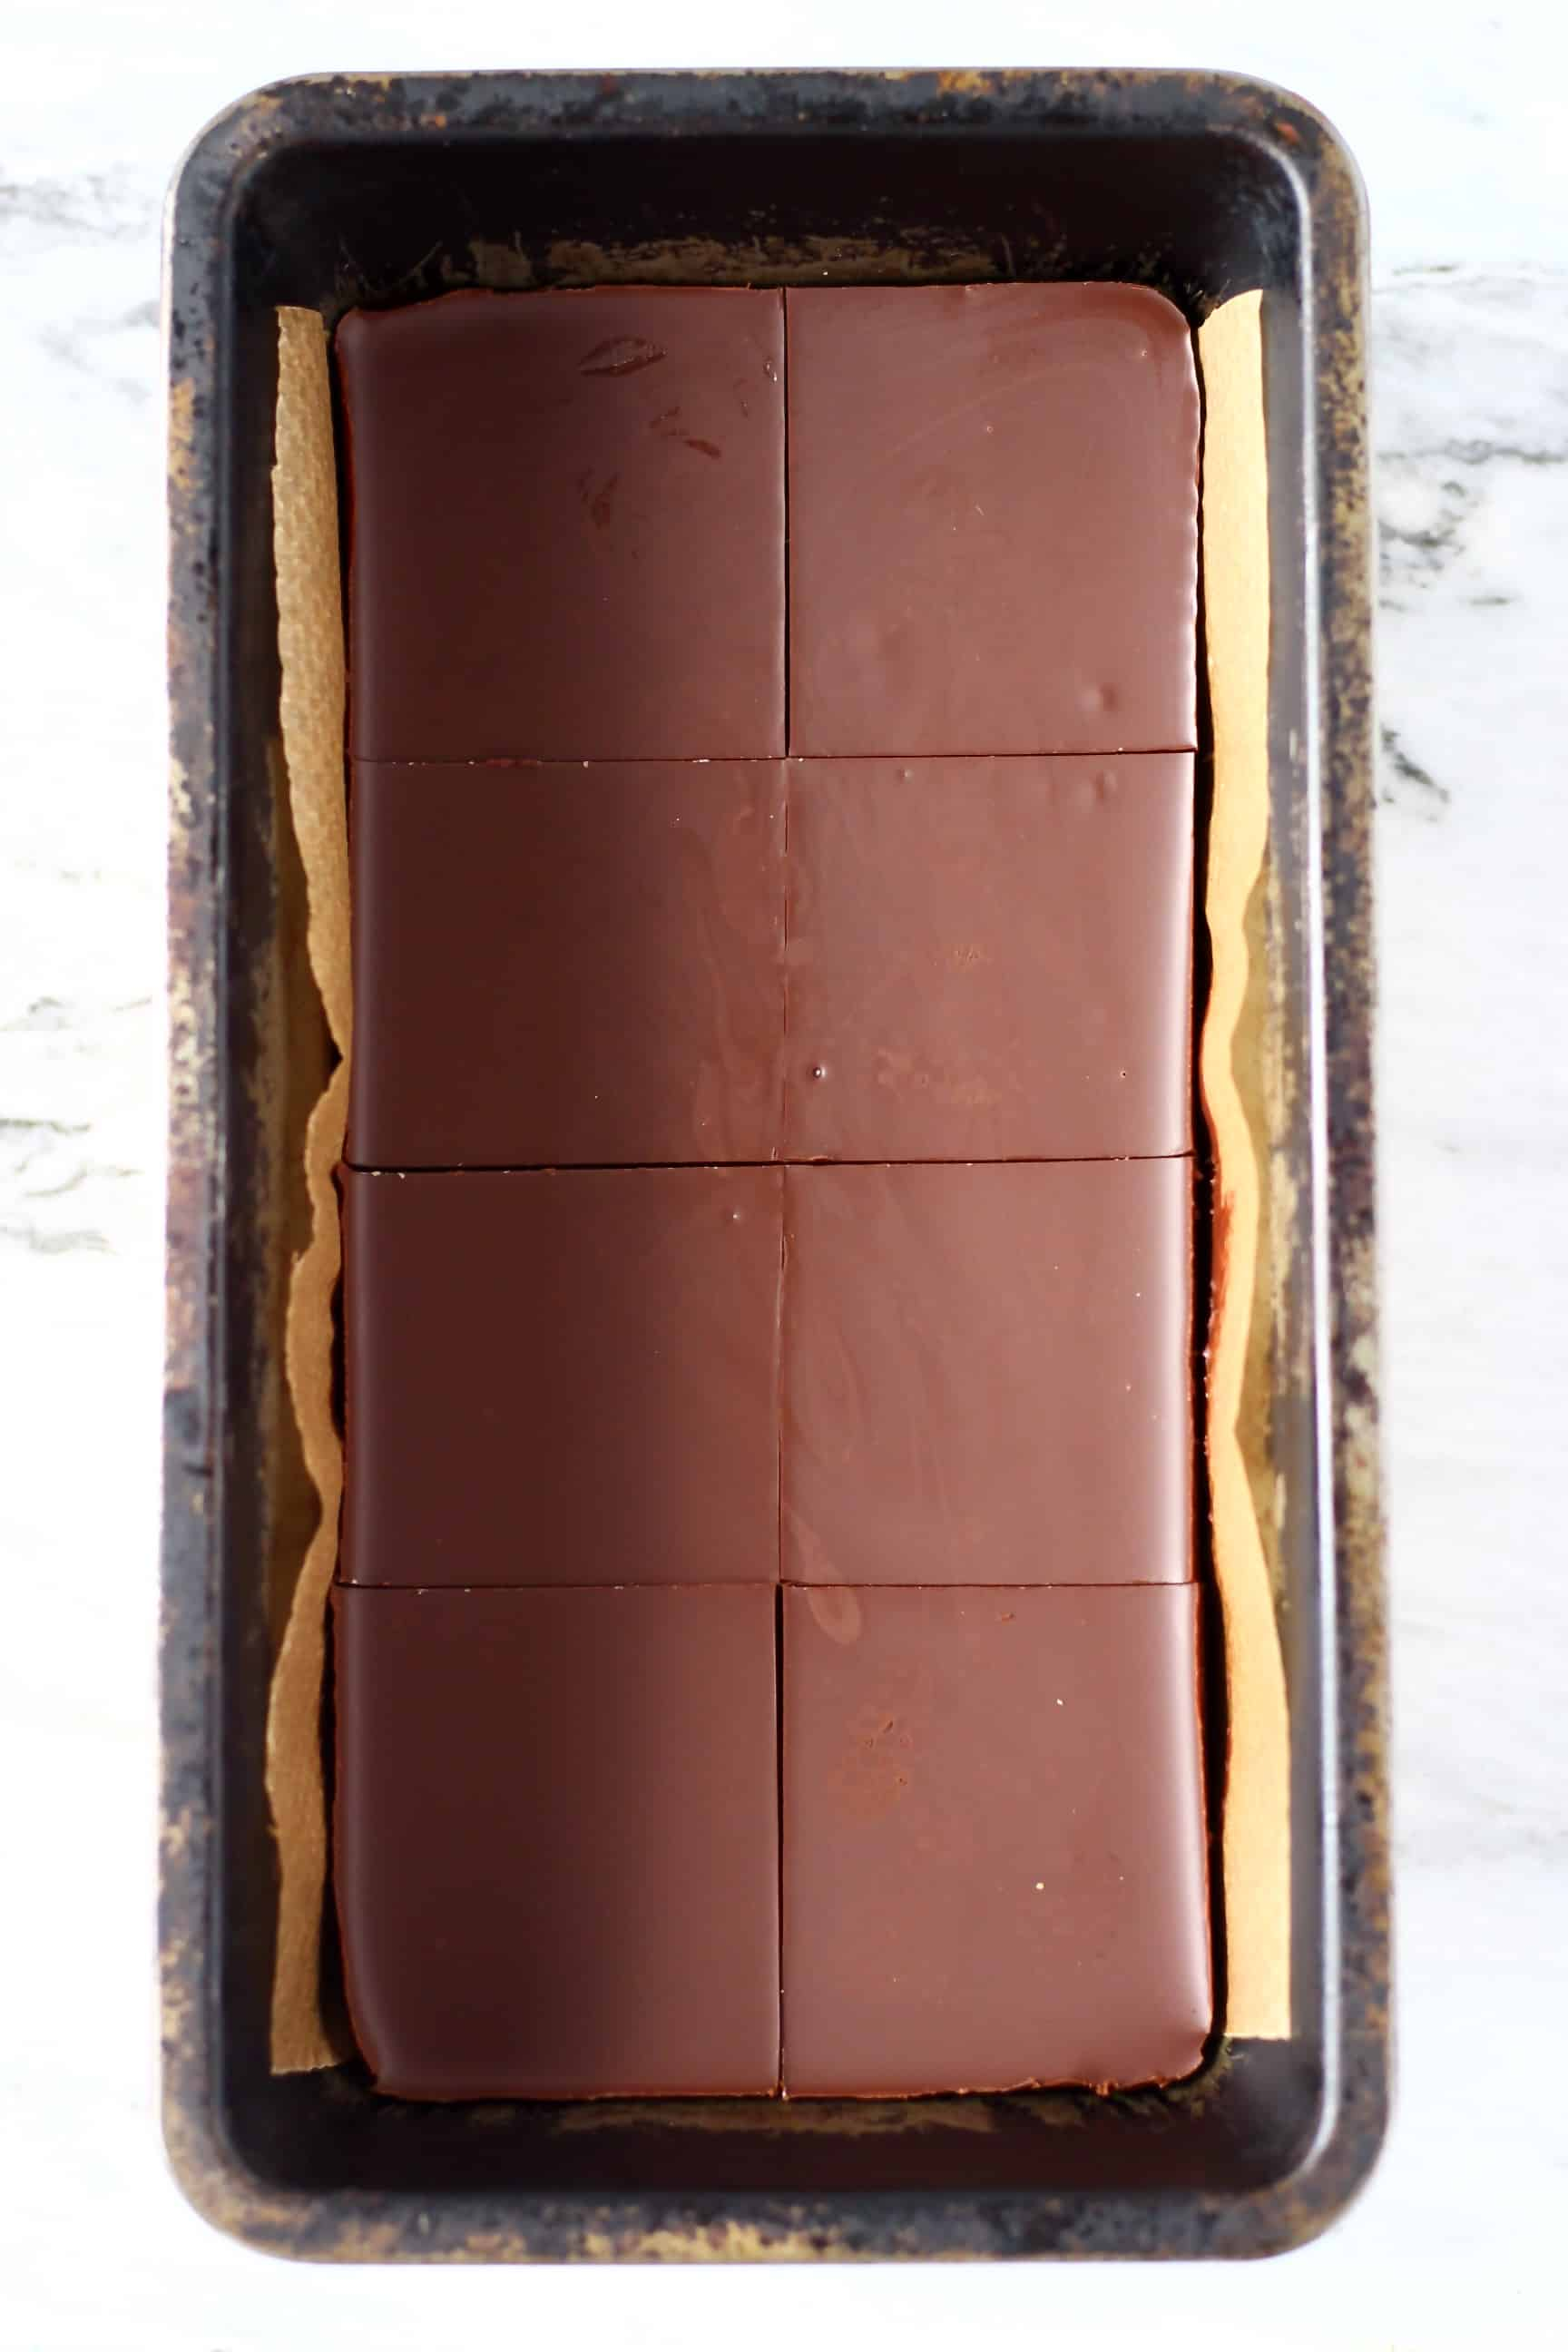 Chocolate peanut butter bars in a loaf tin cut into eight squares